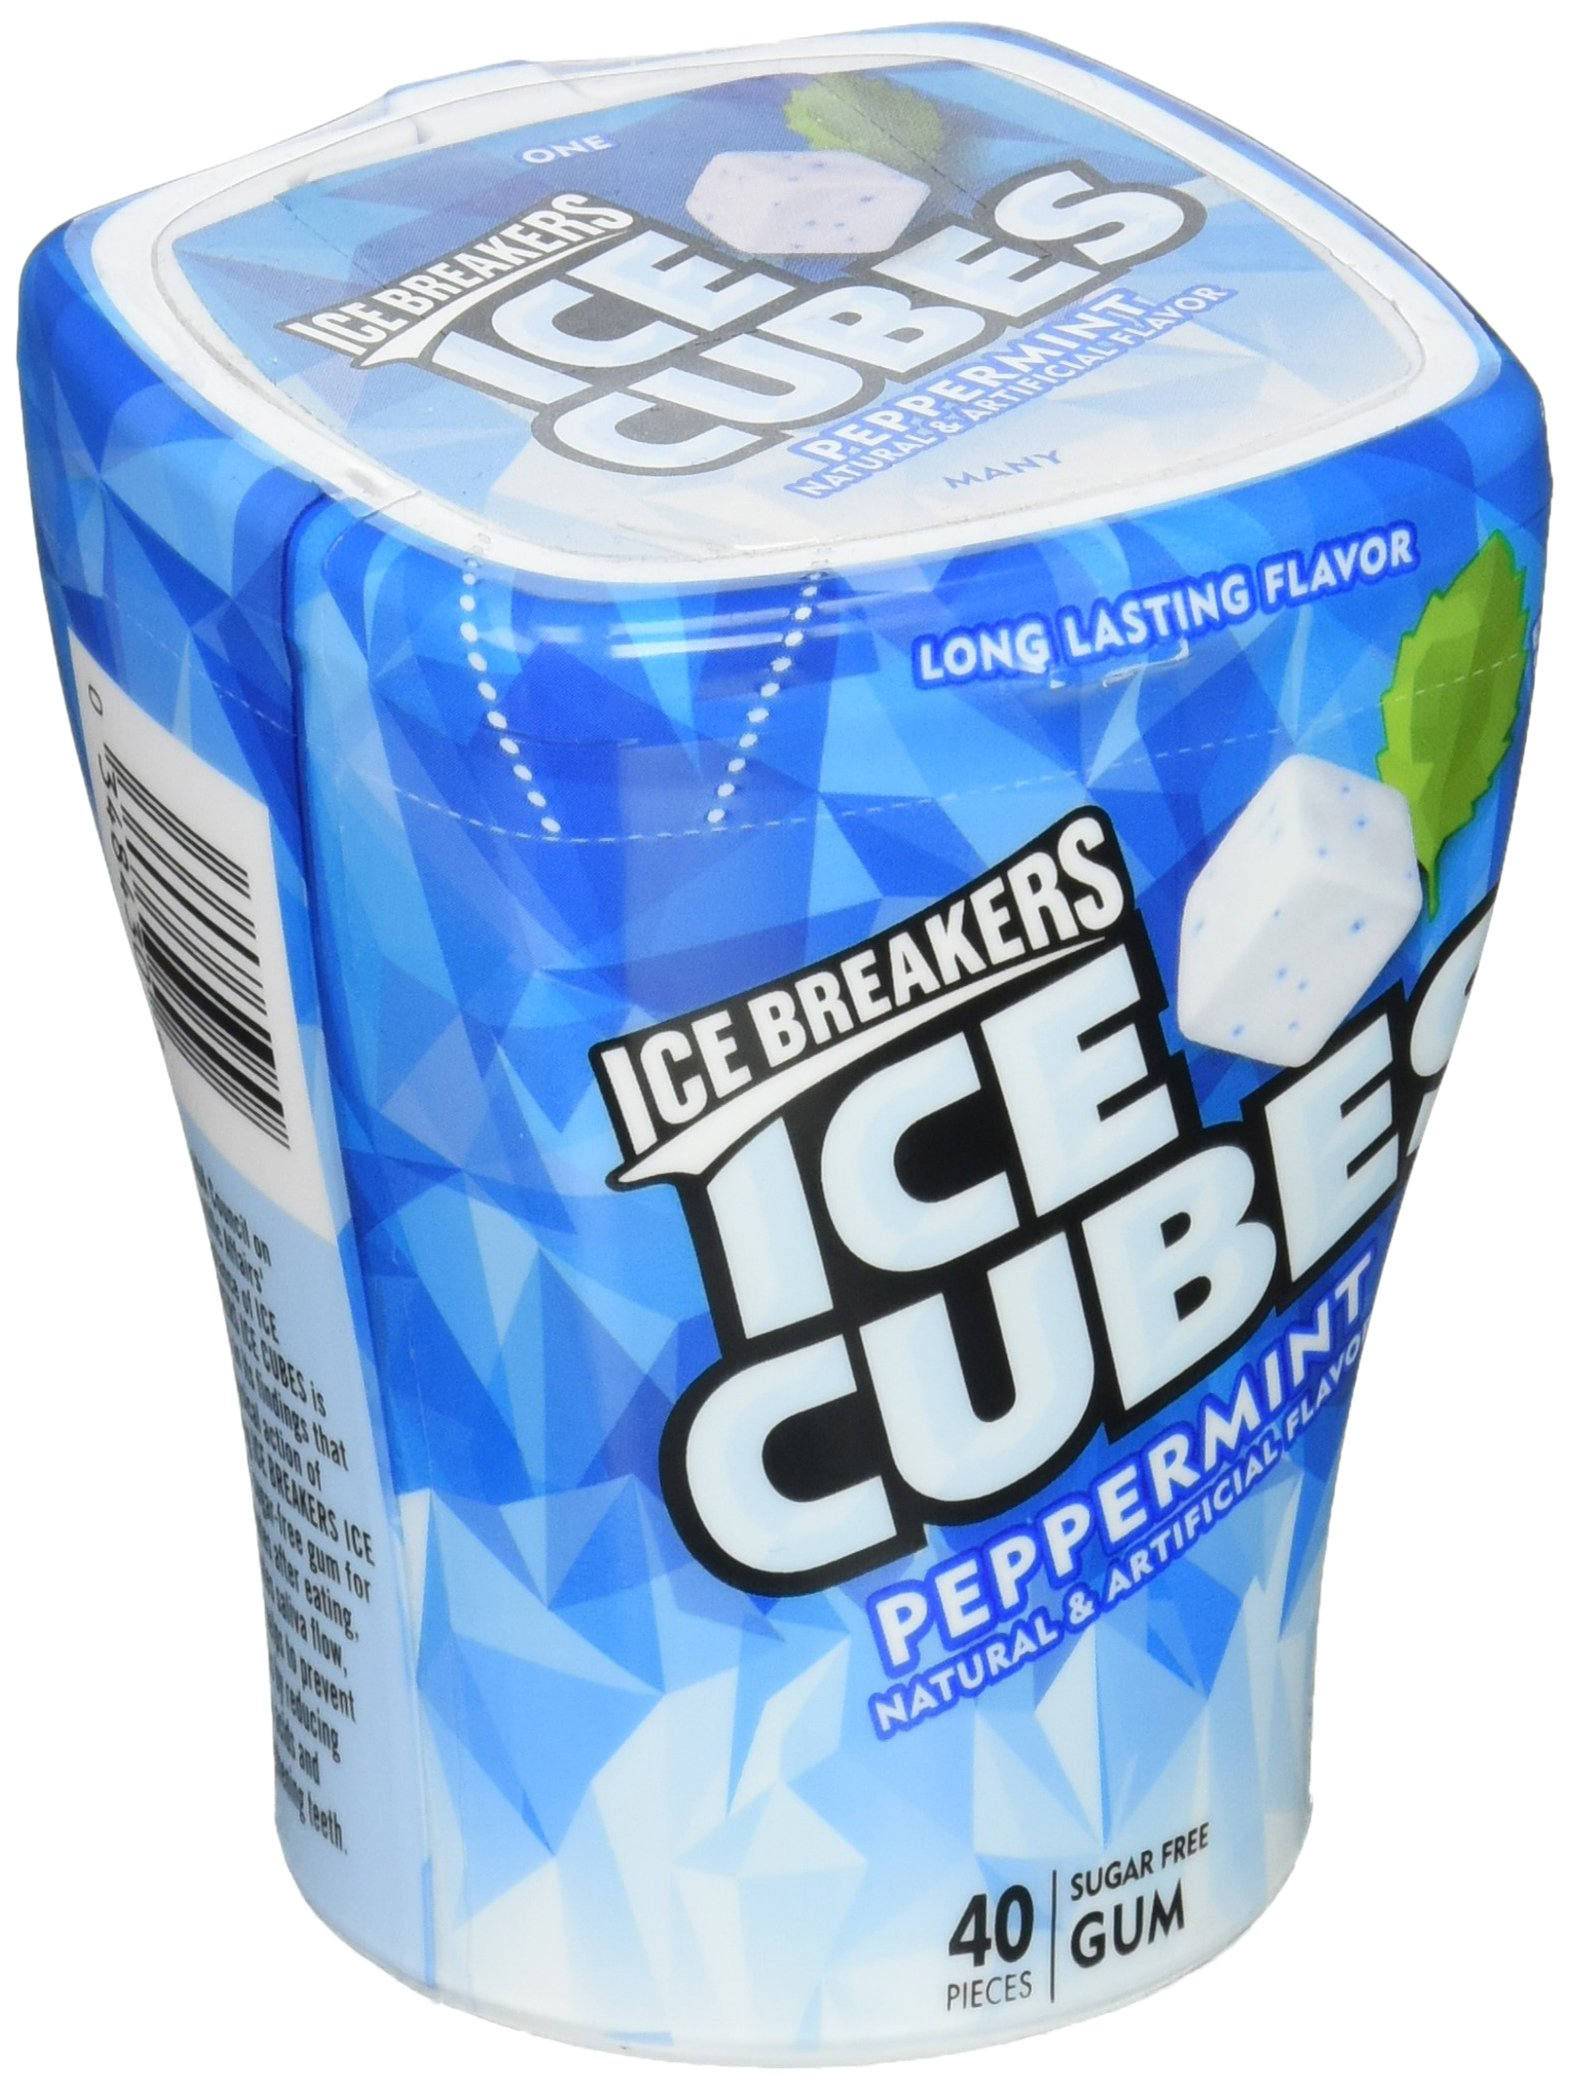 ICE BREAKERS Ice Cubes Sugar Free Gum, Peppermint, 40 Piece